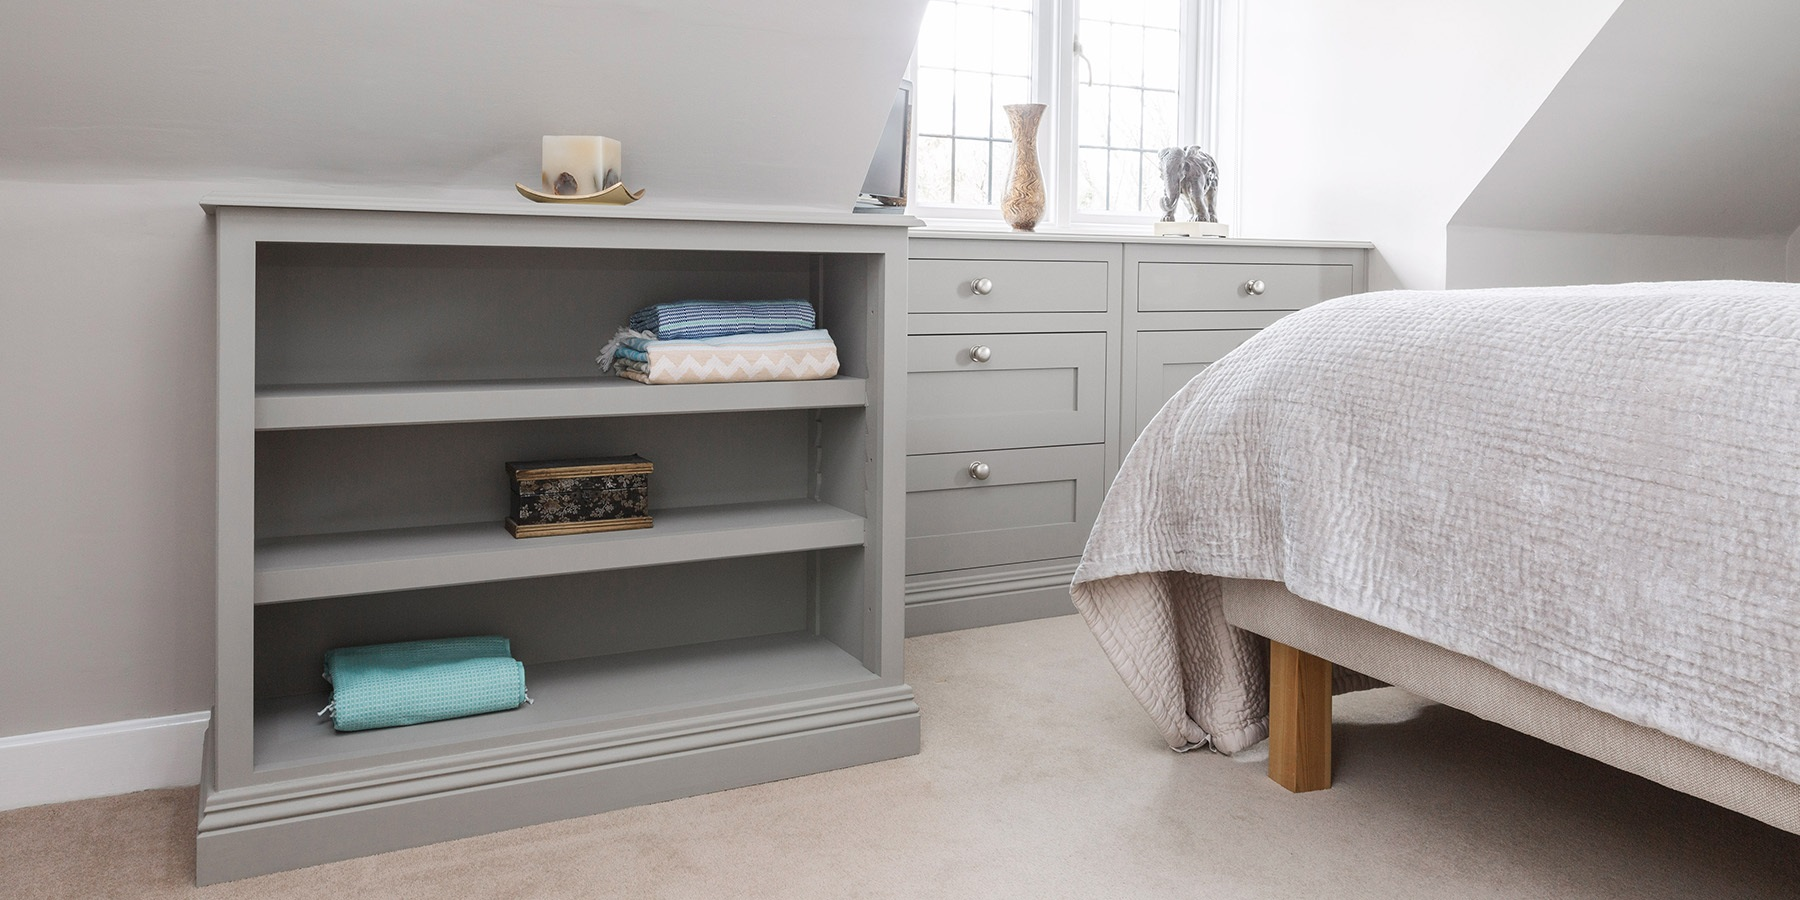 Bespoke Designer Bedroom Storage  - Burlanes handmade bedroom furniture and storage shelving.